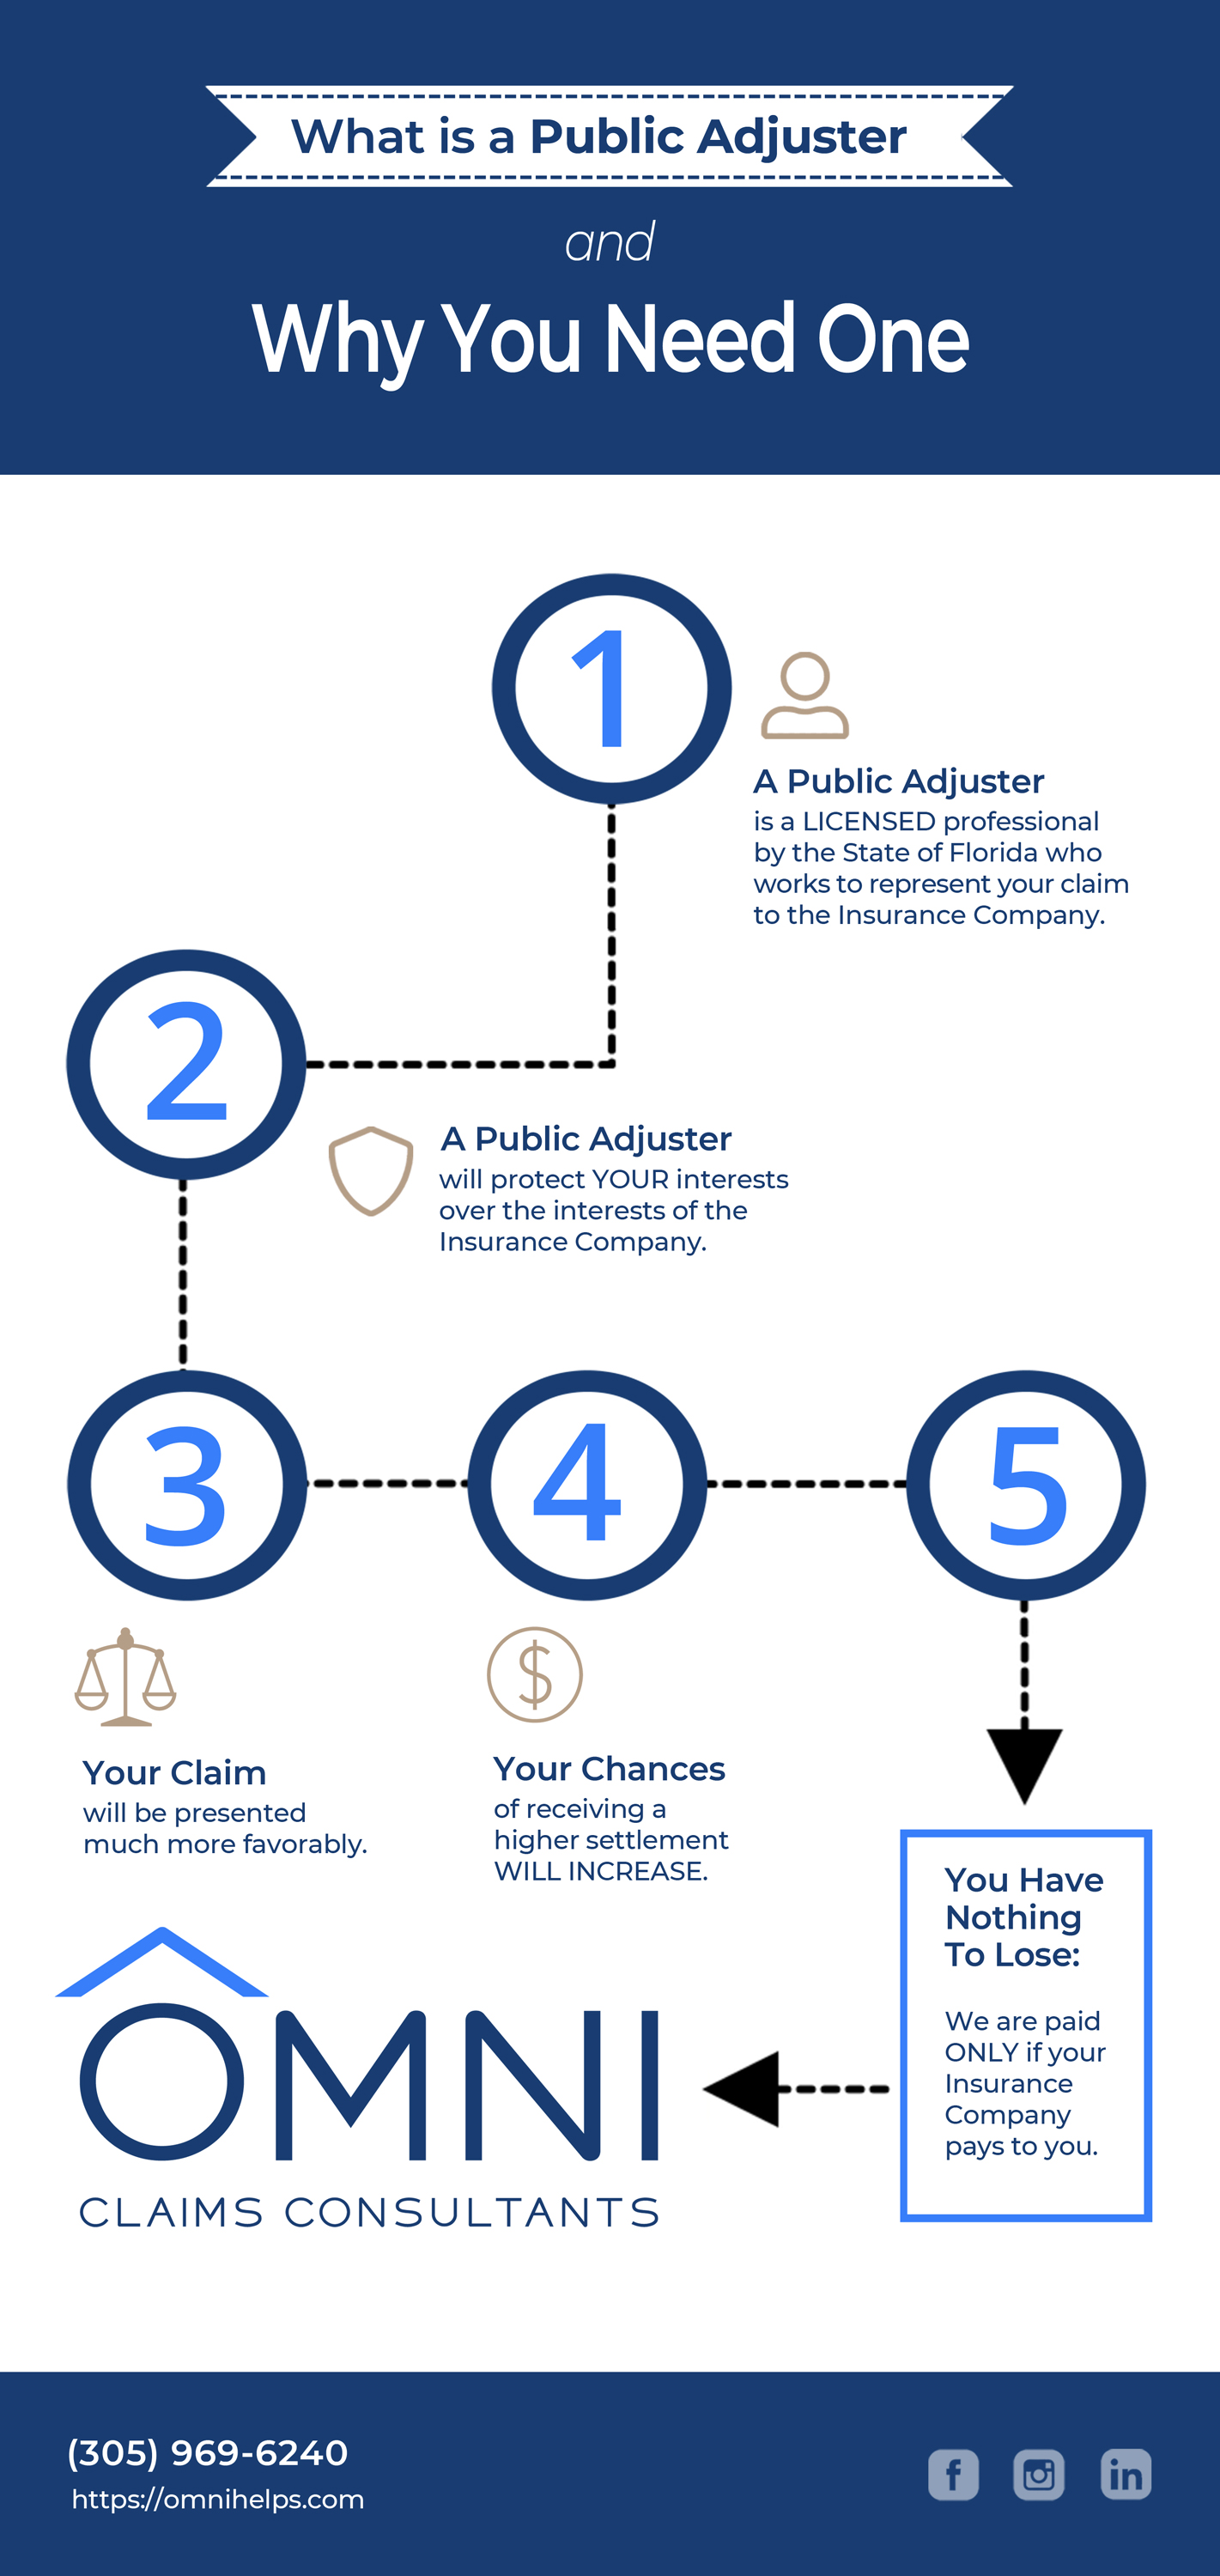 What is a Public Adjuster and why you need one